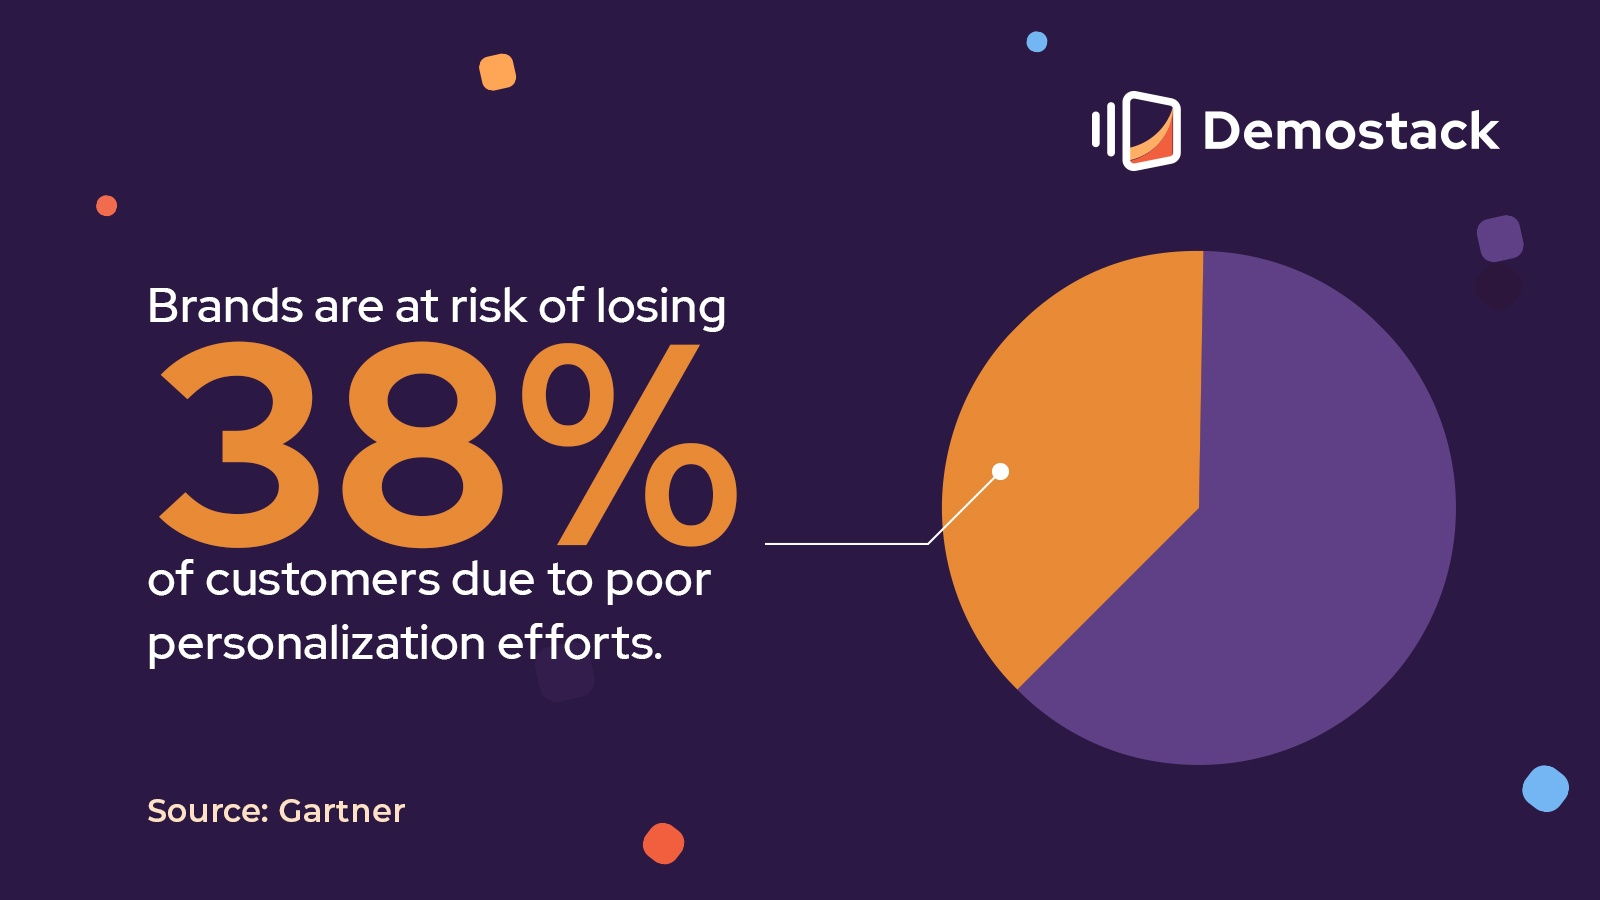 In 2019, a Gartner survey found that brands were at risk of losing 38% of customers due to poor personalization efforts.